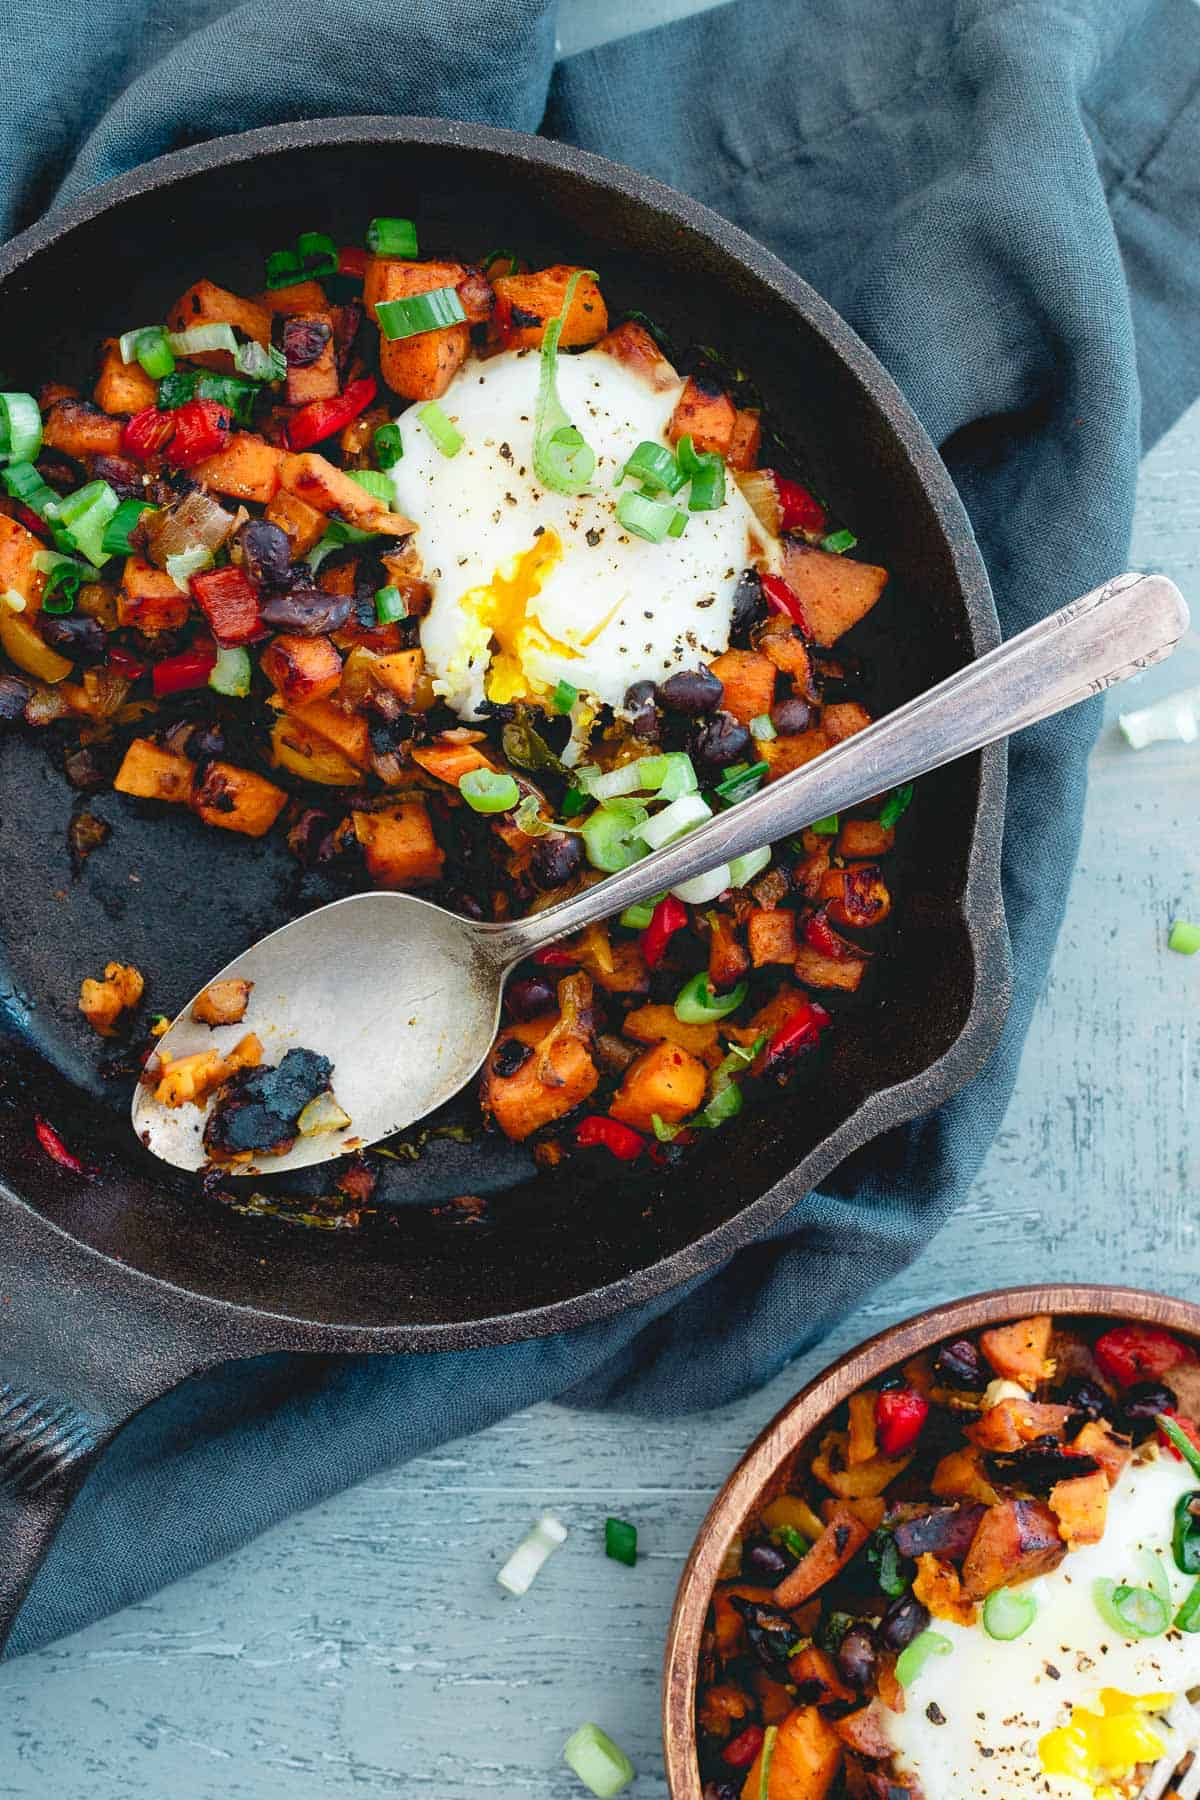 With a couple runny eggs on top, this harissa sweet potato hash is simple, spicy and perfect for a quick meal any time of day!